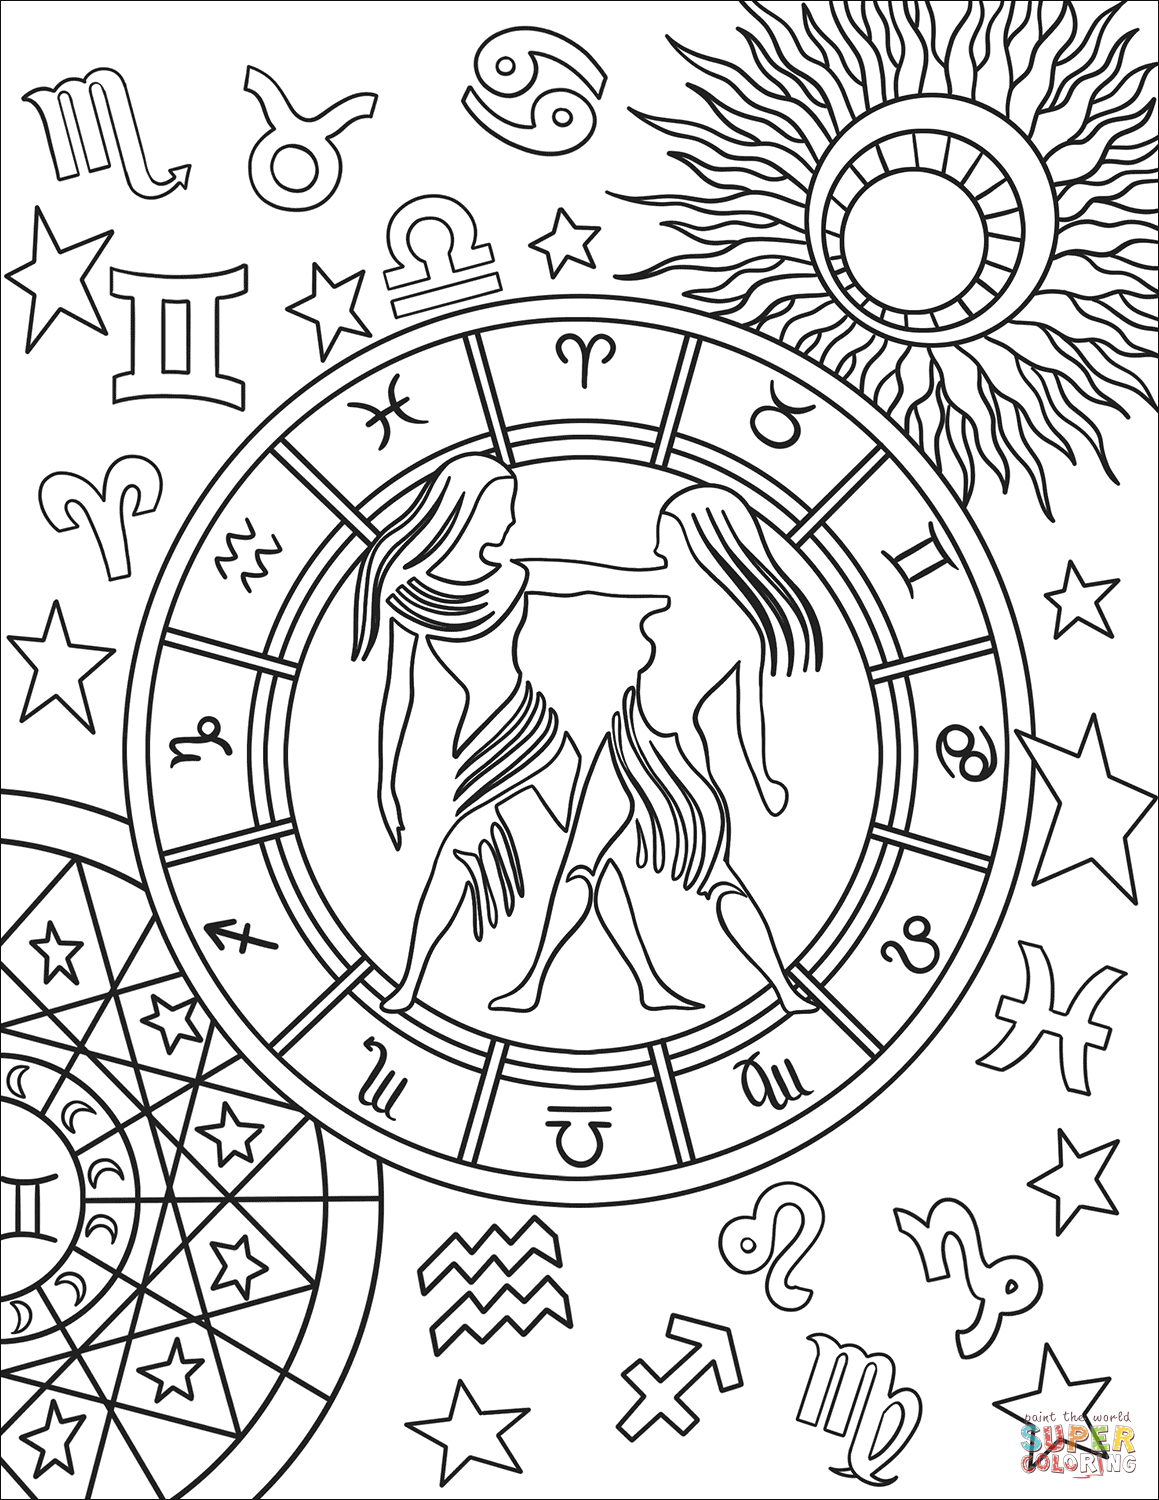 flirting games anime free printable coloring pages games